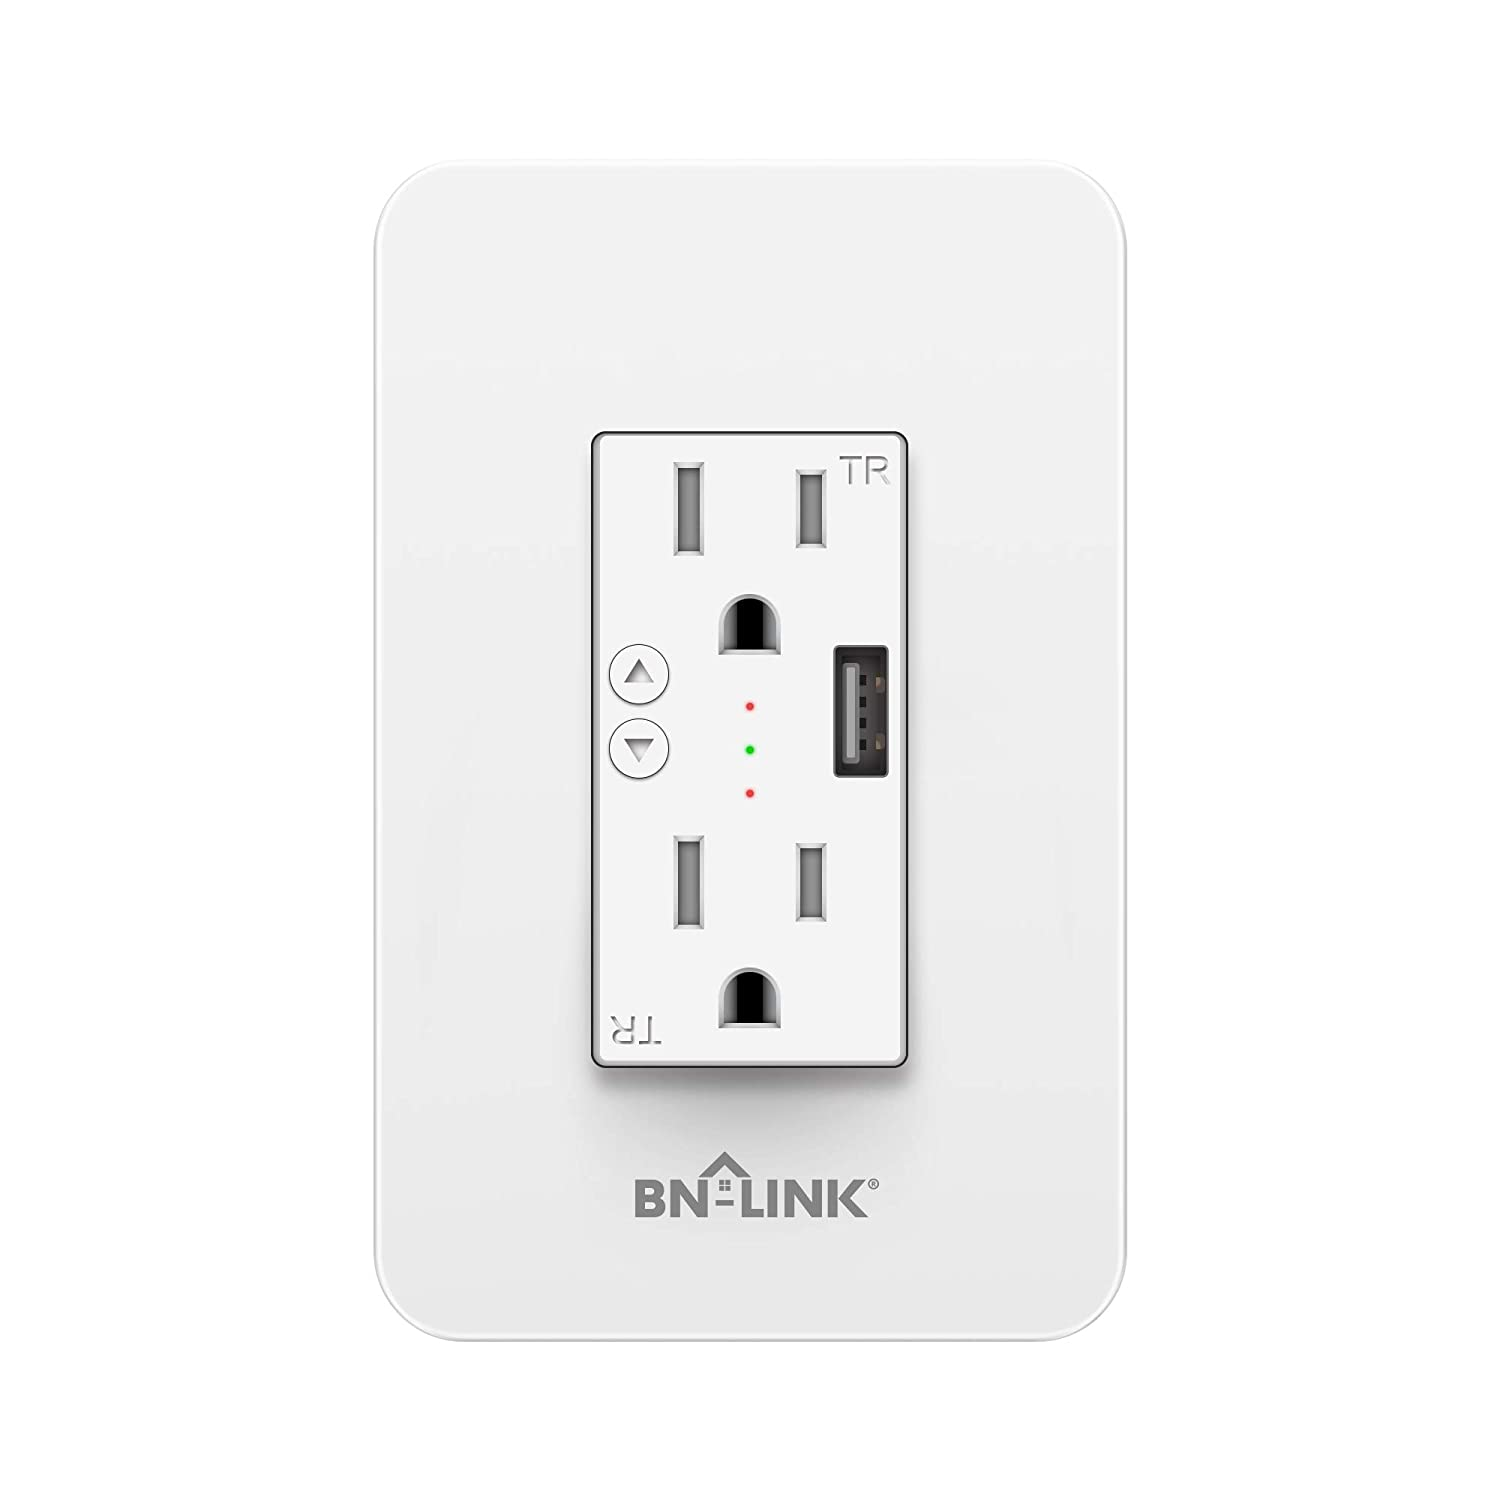 BN-LINK Electrical Outlet in-Wall Smart Wi-Fi Outlet with High Speed 2.1A USB Port